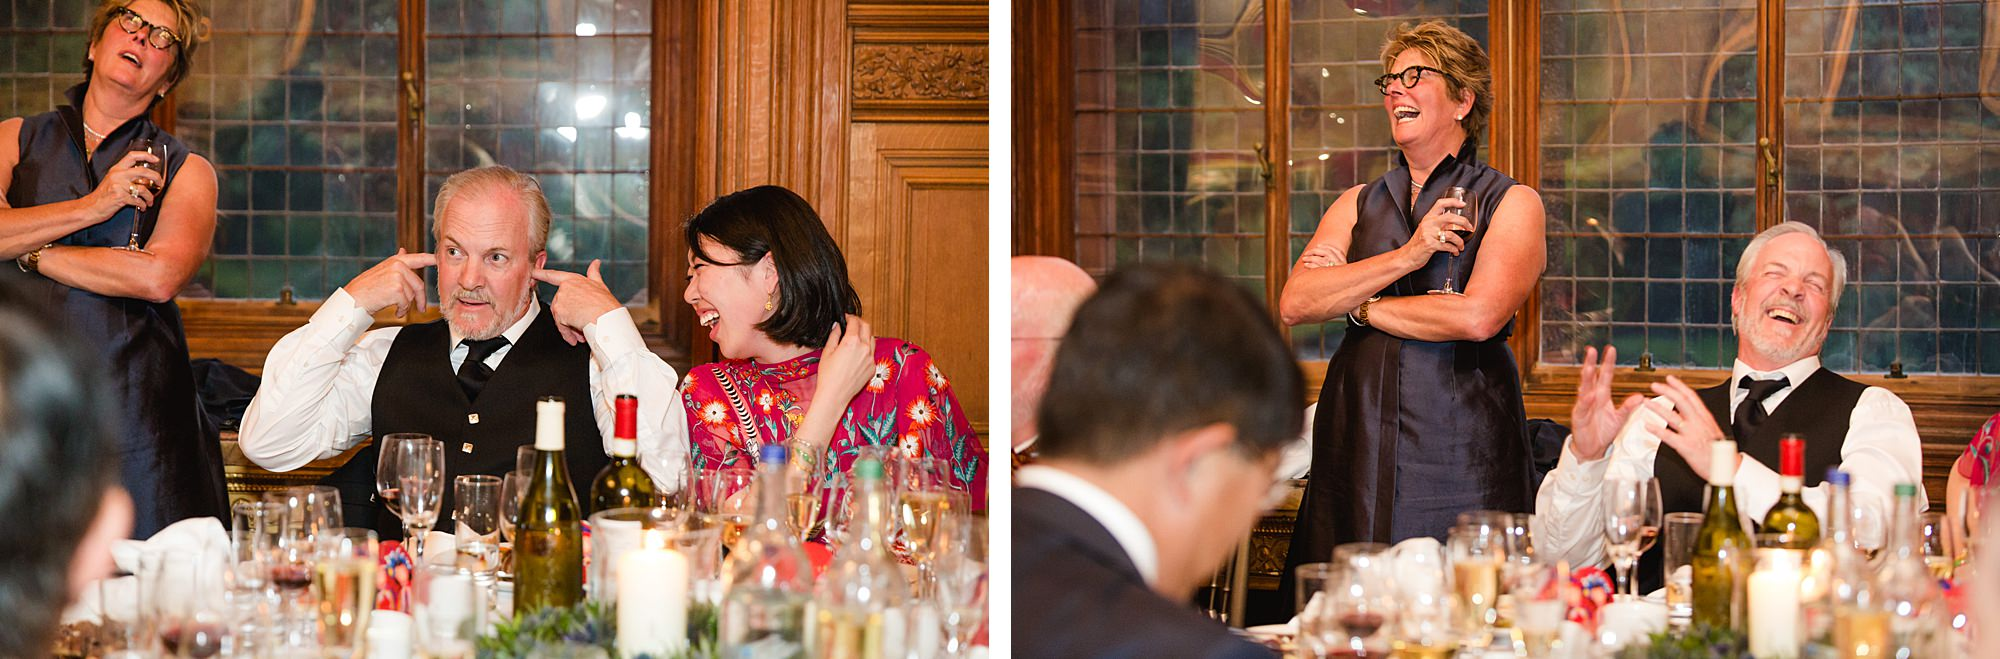 intimate wedding scotland laughing guests